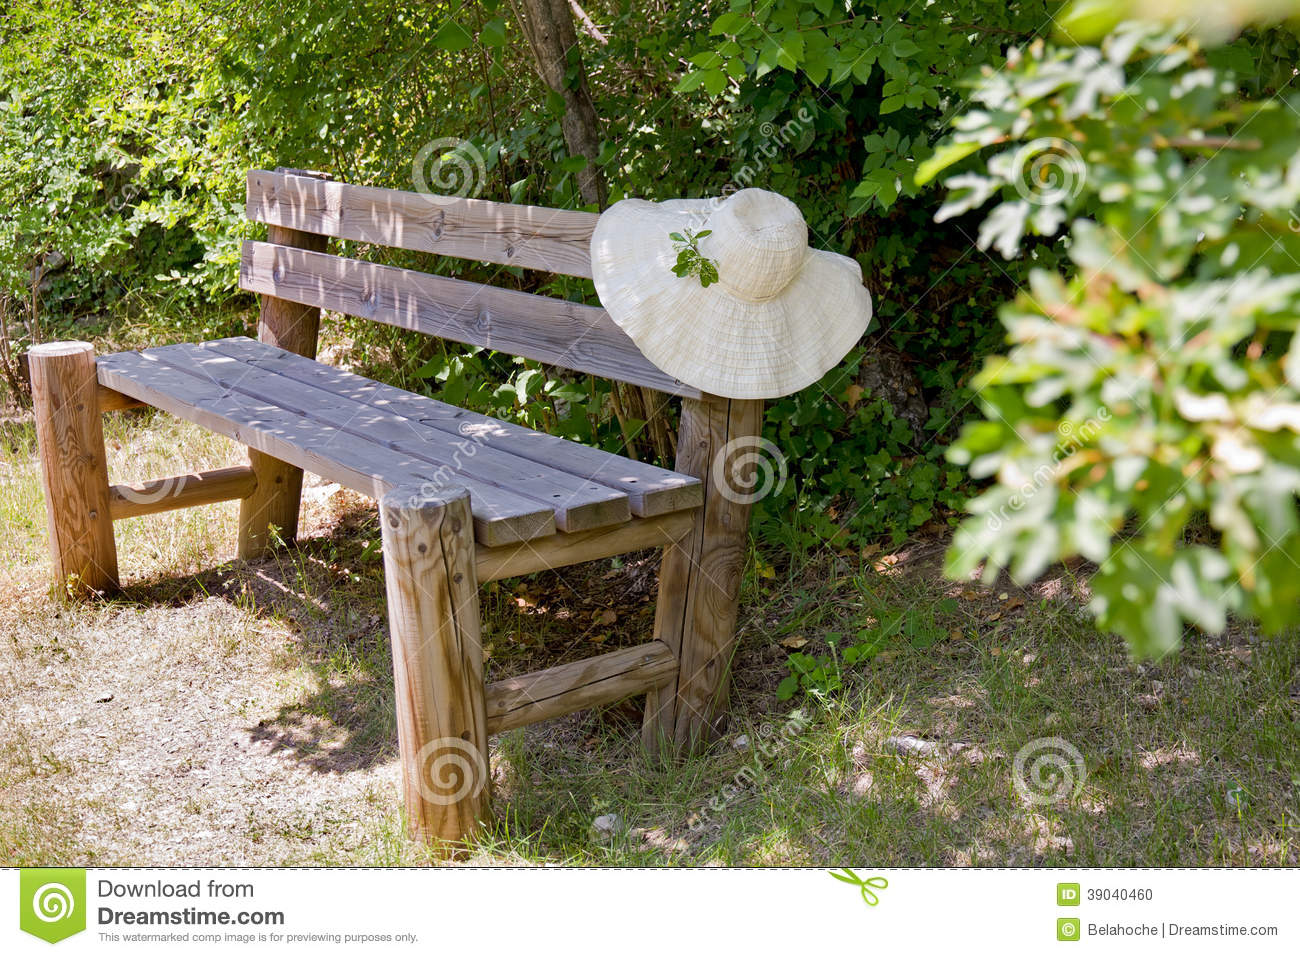 Sunhat On A Wooden Garden Bench. Wide Brimmed Summer Sunhat Draped Over The  Back Of